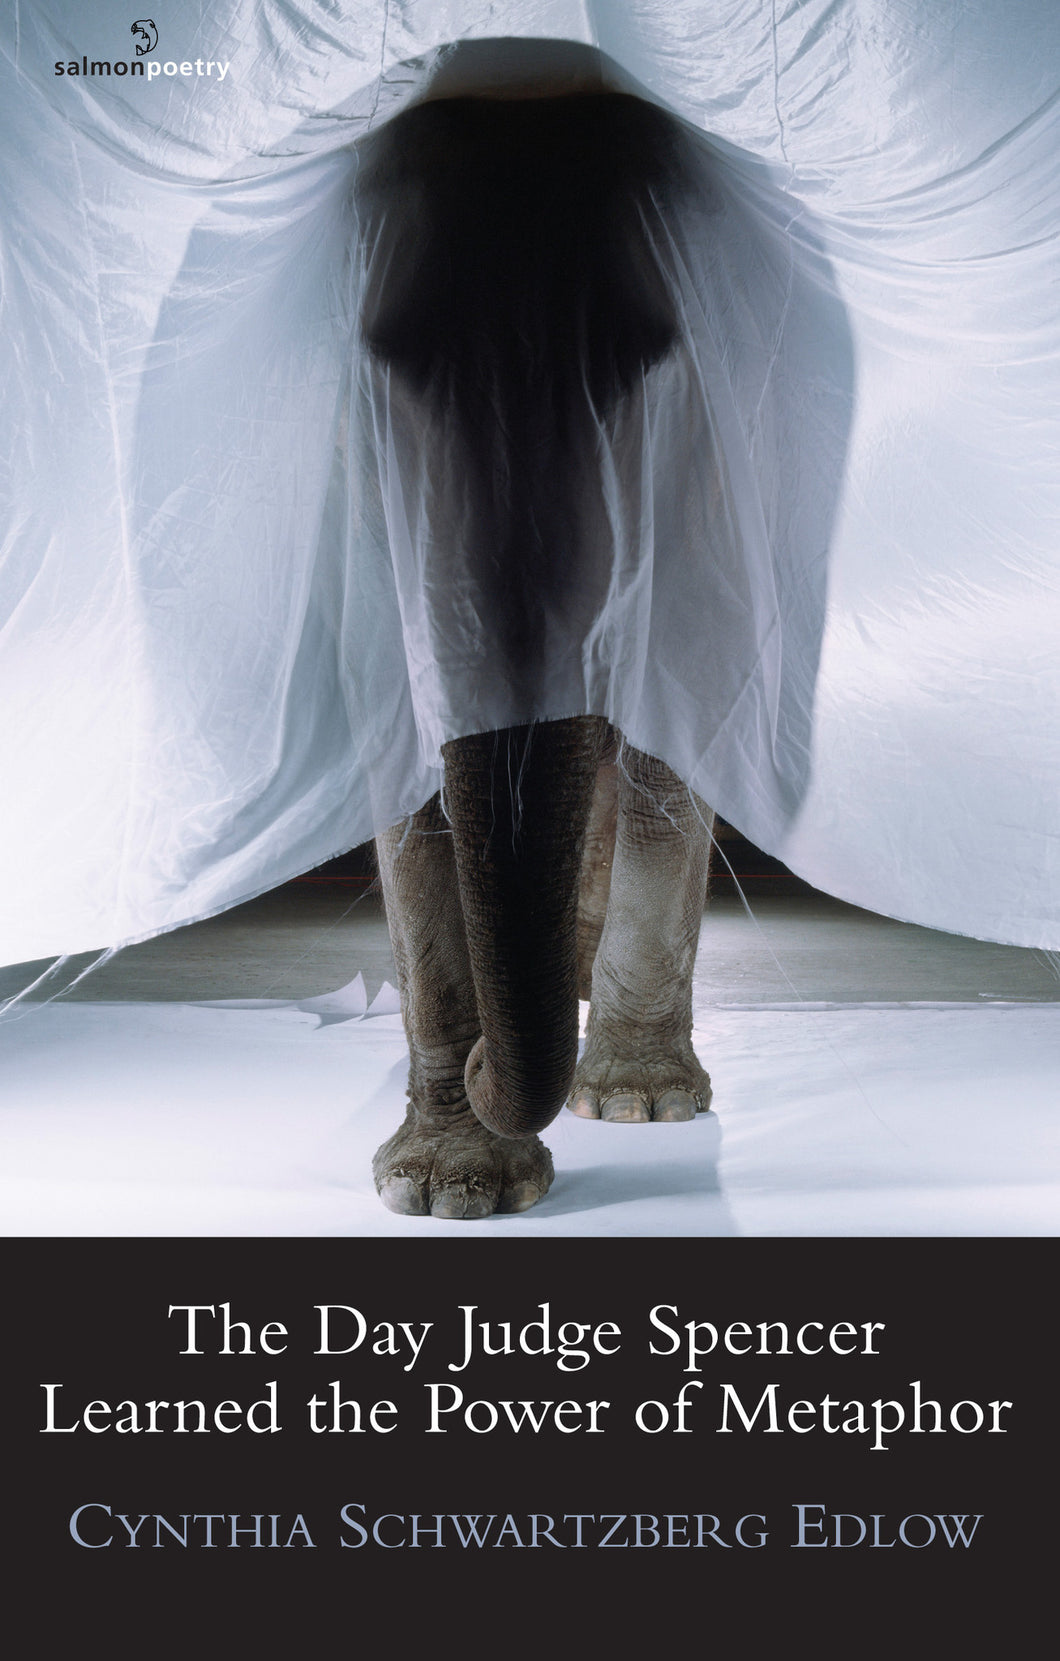 The Day Judge Spencer Learned the Power of Metaphor